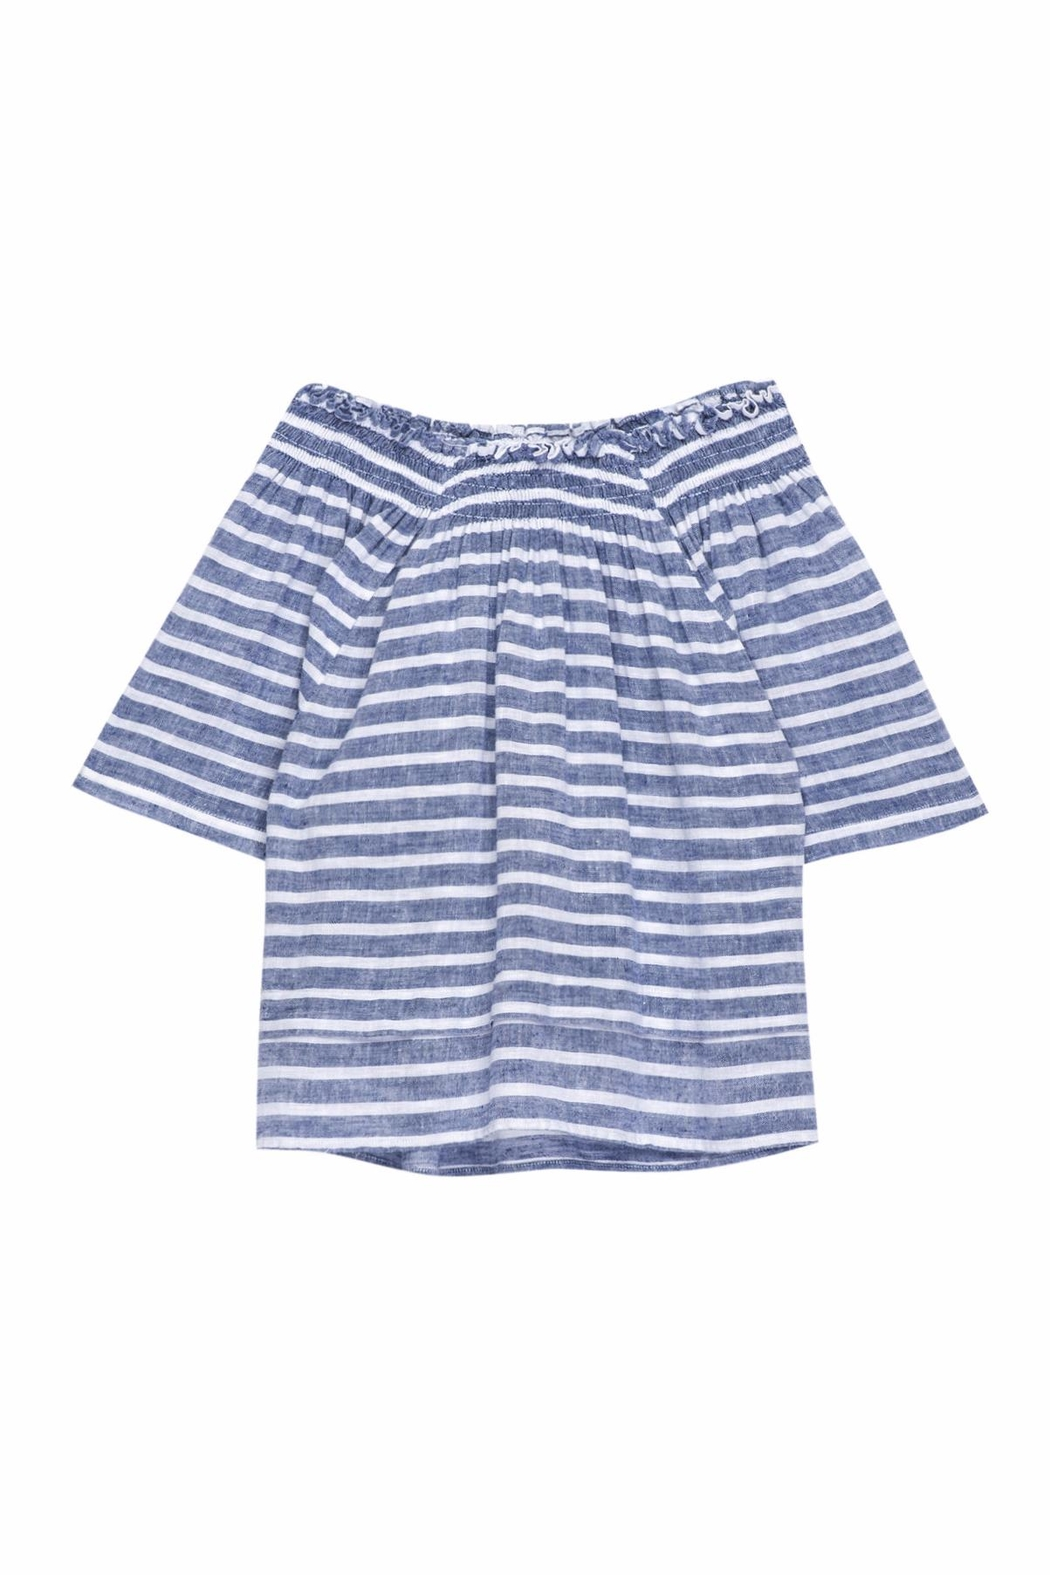 Rails Isabelle Parisian Blue Top - Main Image